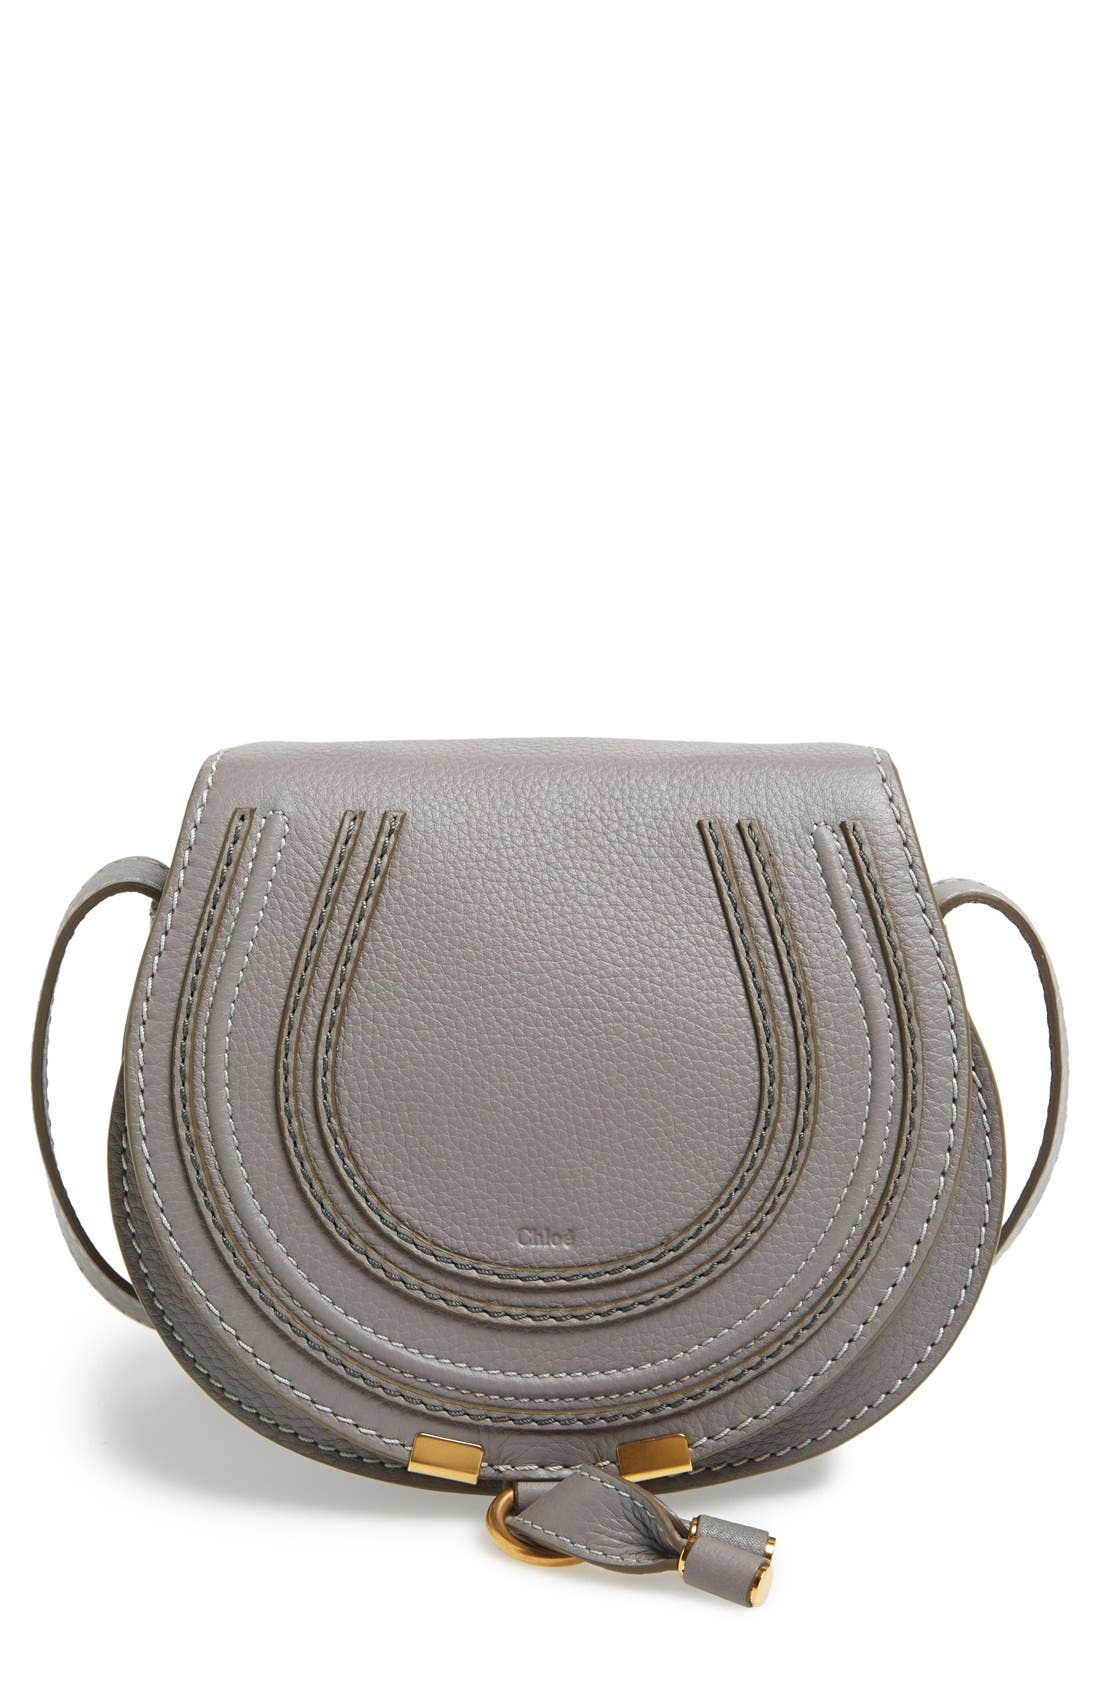 'Mini Marcie' Leather Crossbody Bag,                             Main thumbnail 1, color,                             CASHMERE GREY